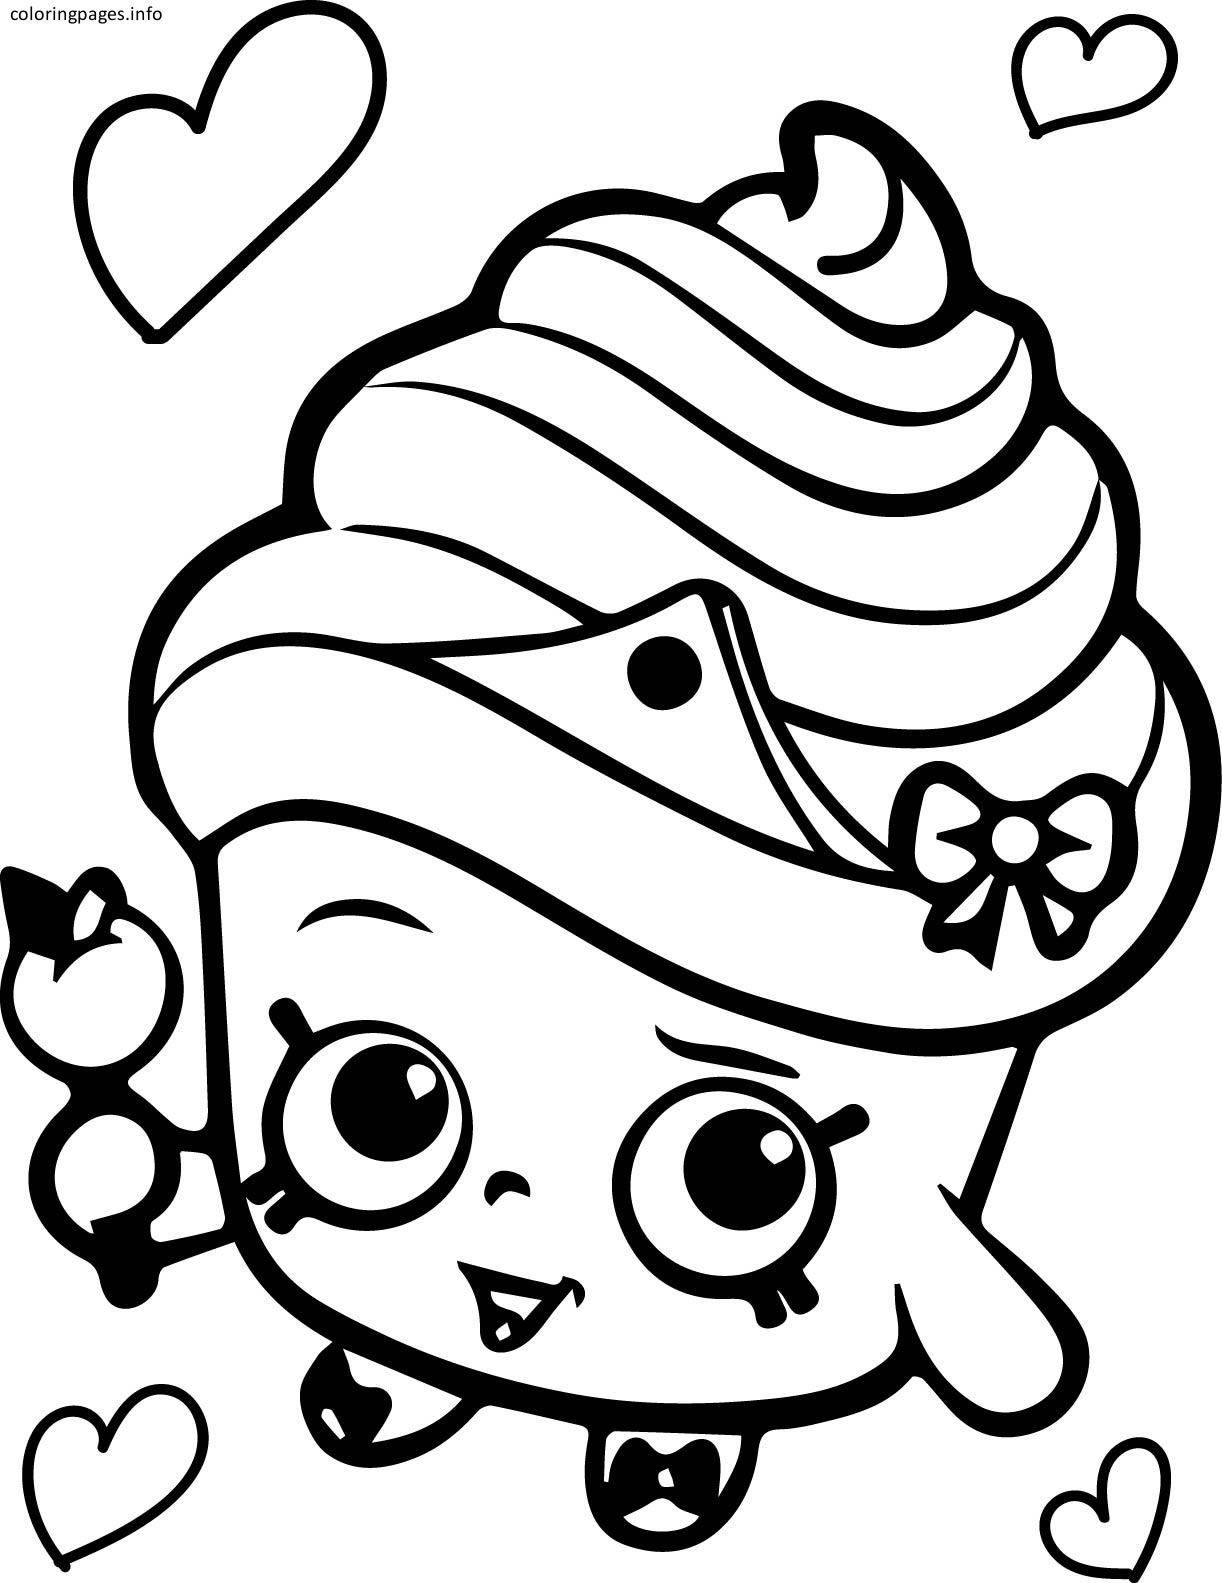 1222x1583 Shopkins Coloring Pages Cupcake Queen Shopkins Coloring Pages